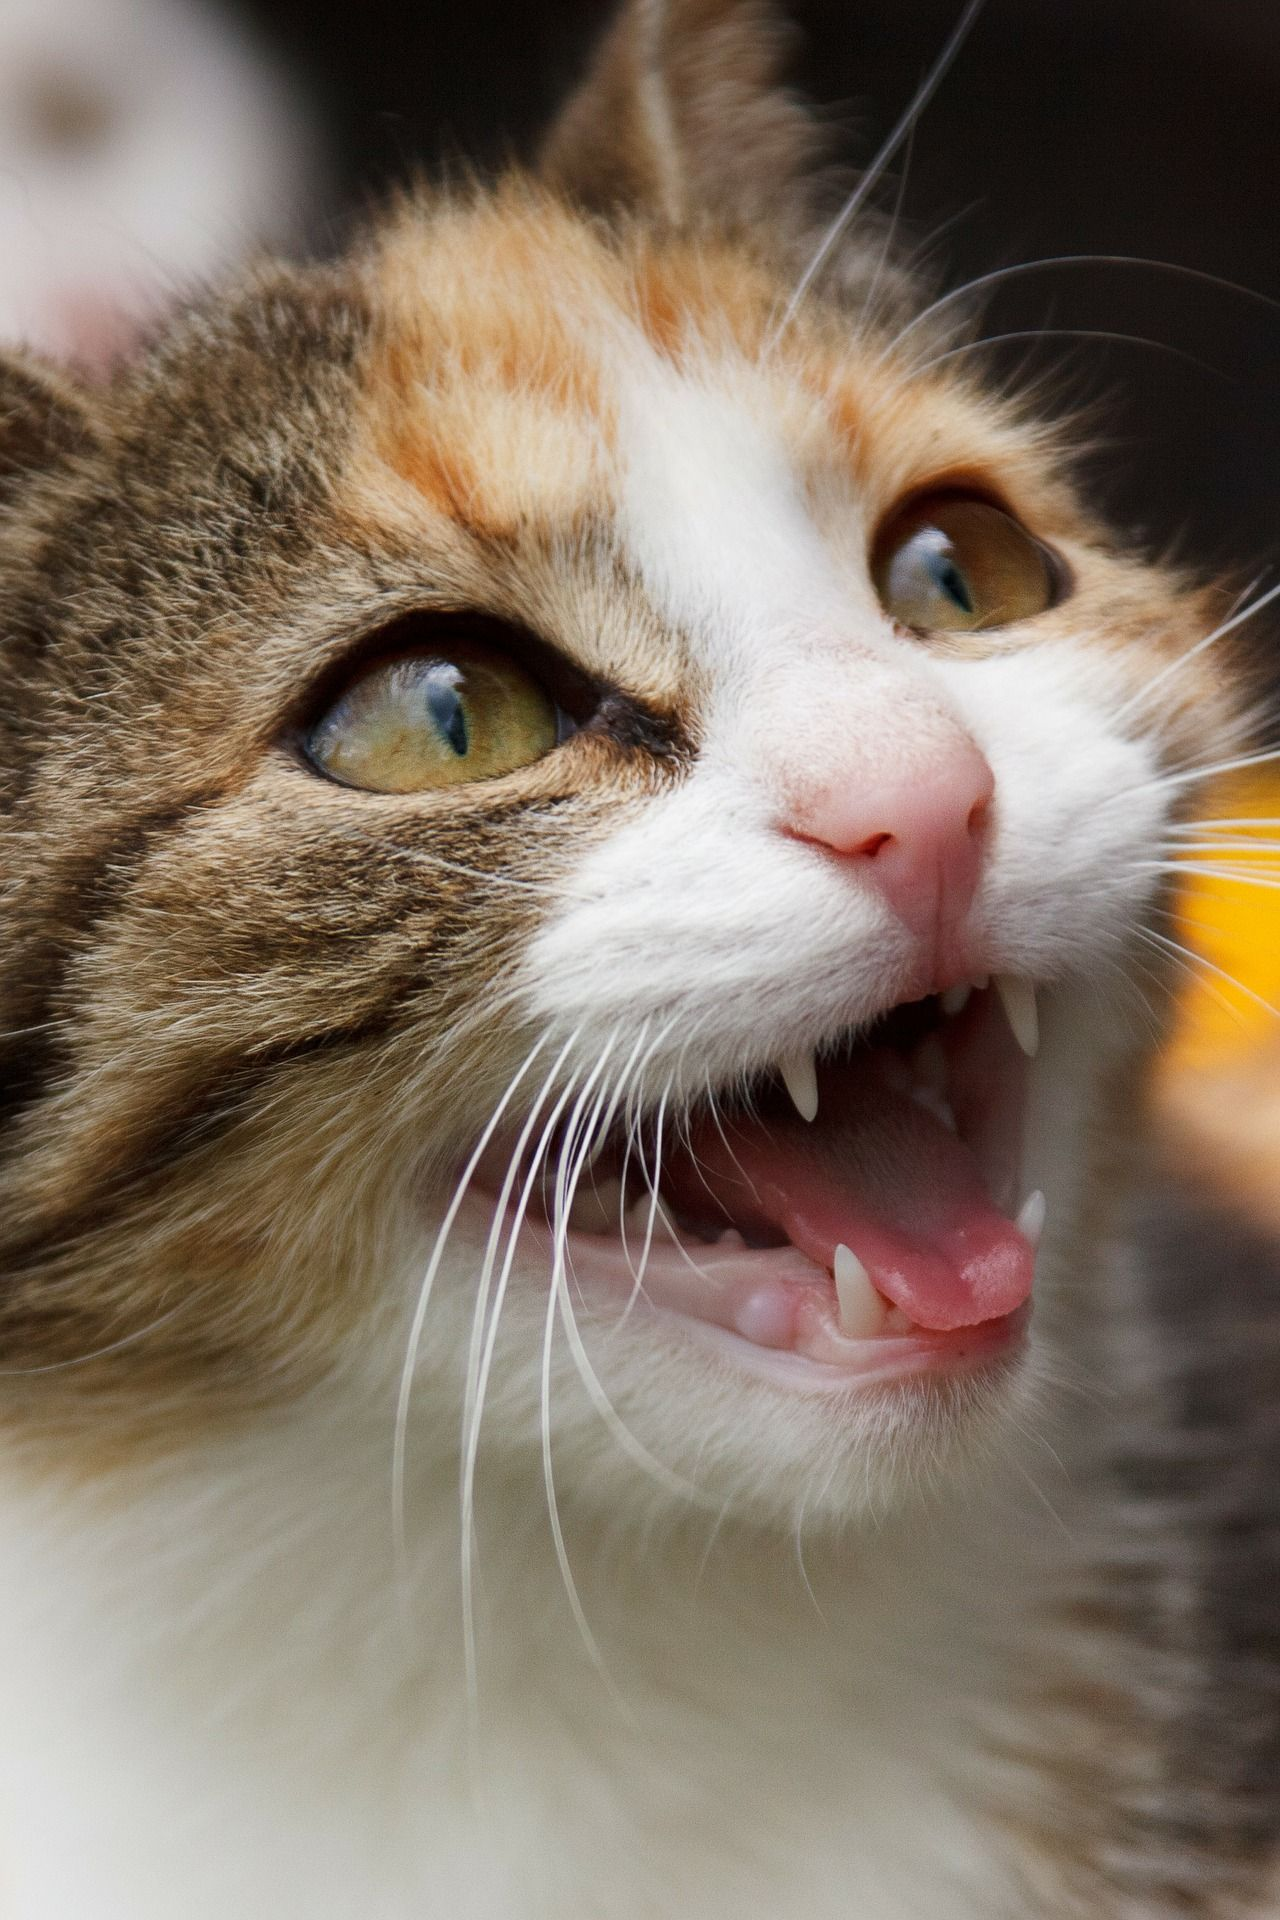 Why is my cat meowing so much? Pregnant cat, Kittens